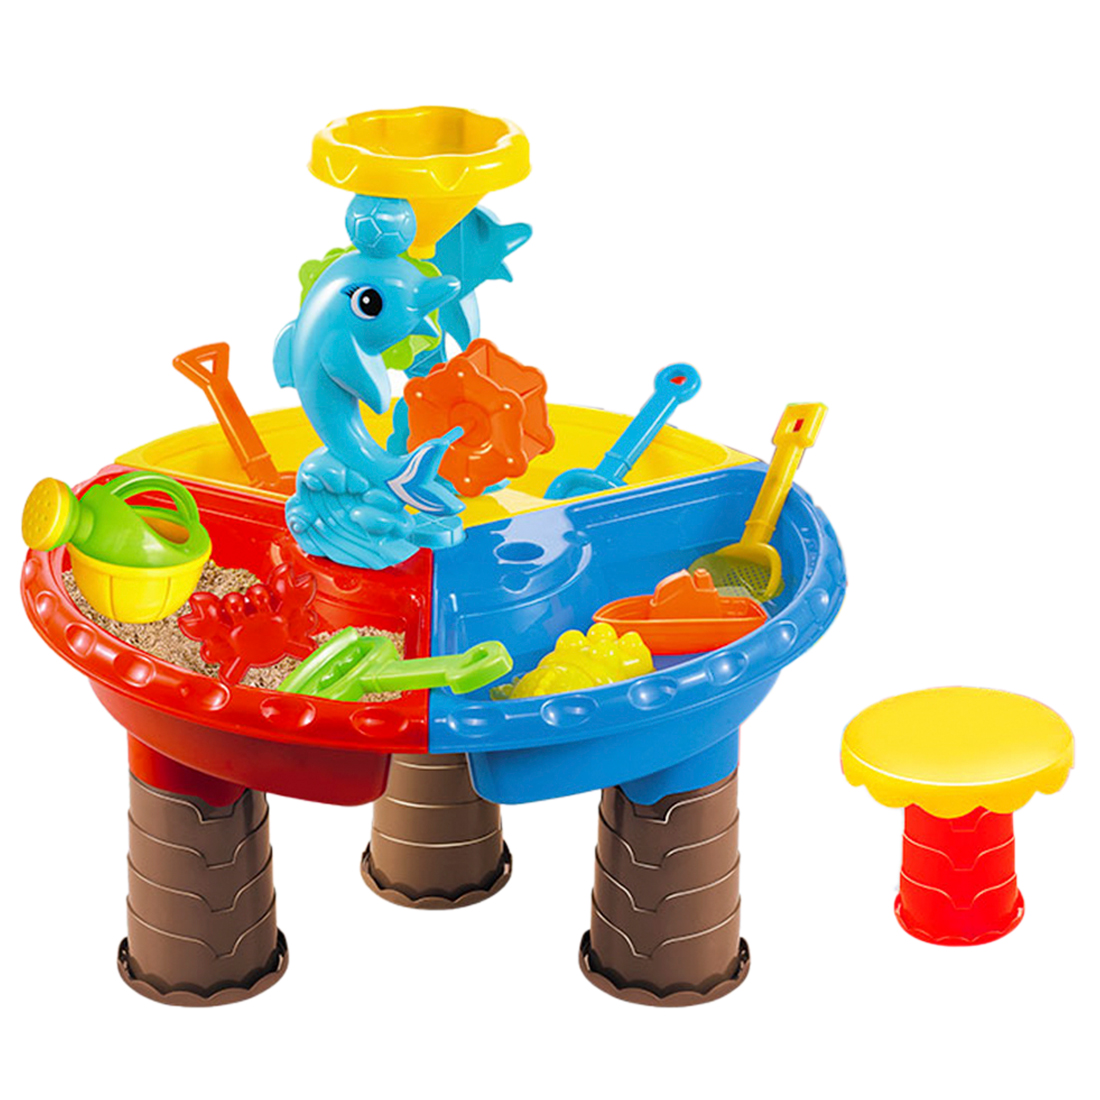 22Pcs Kids Plastic Sand Pit Set Beach Sand Table Water Play Beach Toys For Kids 9827/9826 - Color Random 22pcs sand